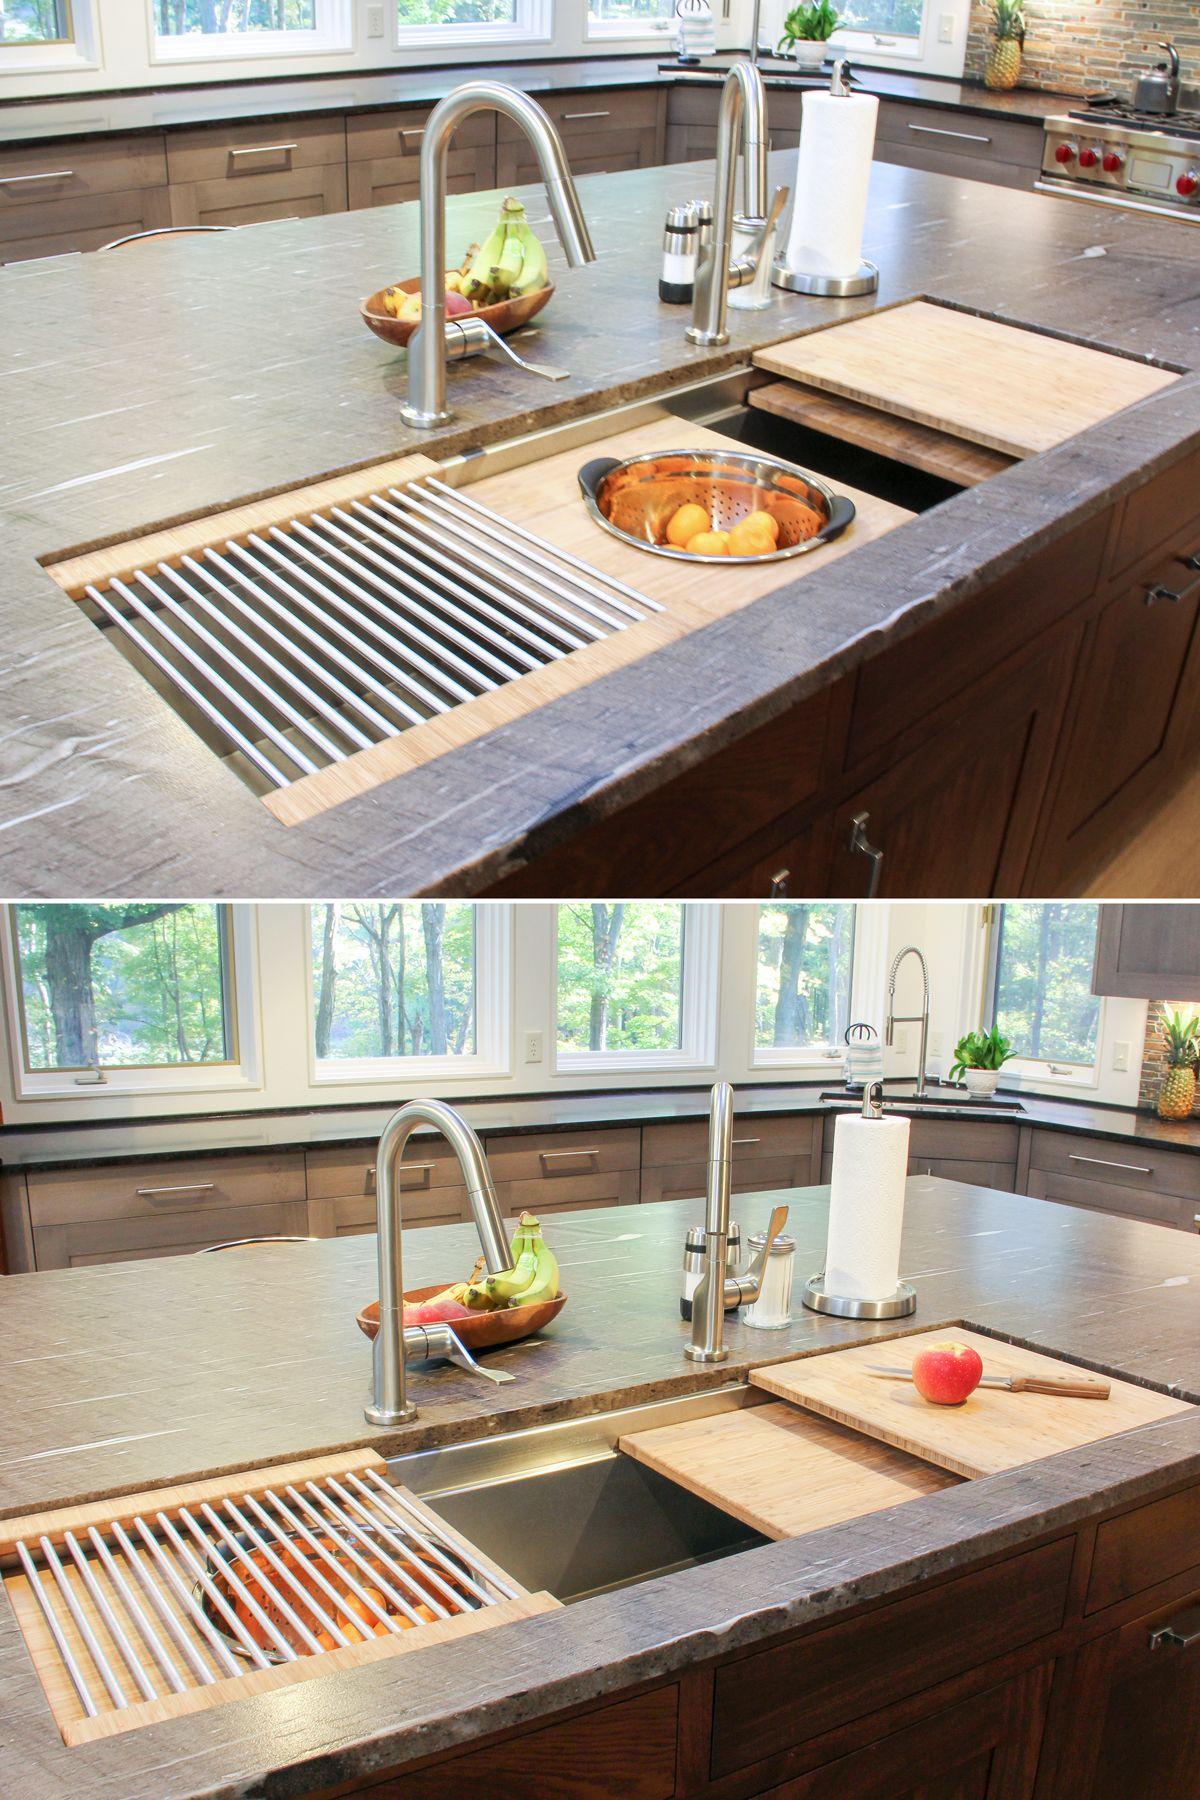 Kitchen Island Sink With Cutting Boards, Colander And Dish Drying Rack.  Custom Cabinetry By Bremtown Cabinetry. #galleysink